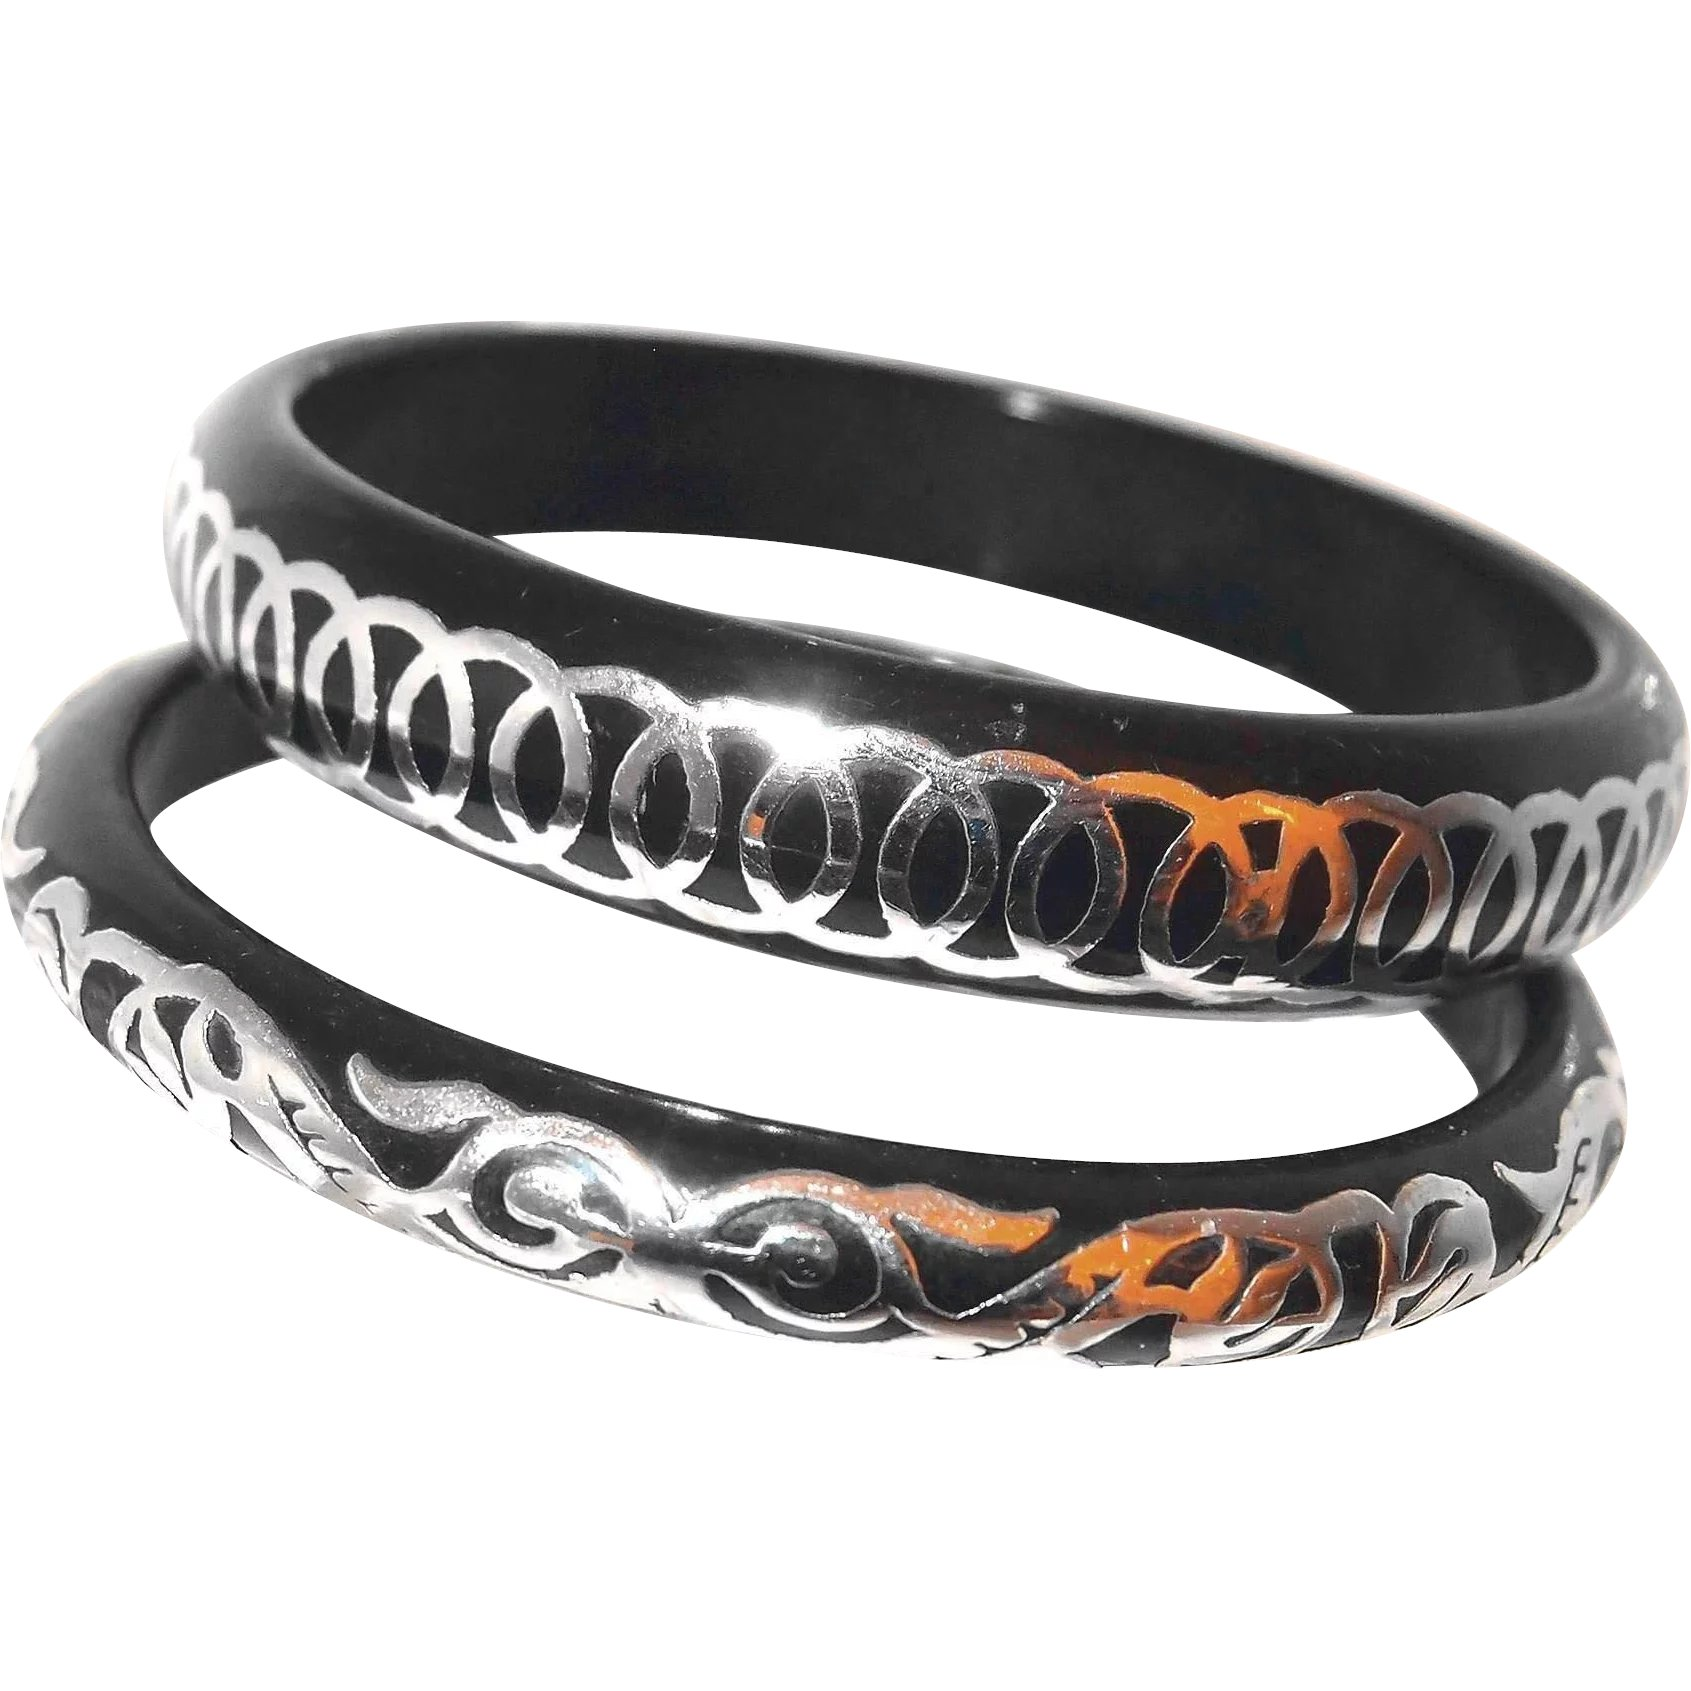 jewelry isharya oval home bangles by resin hinge muse sale bangle black p temple bracelets